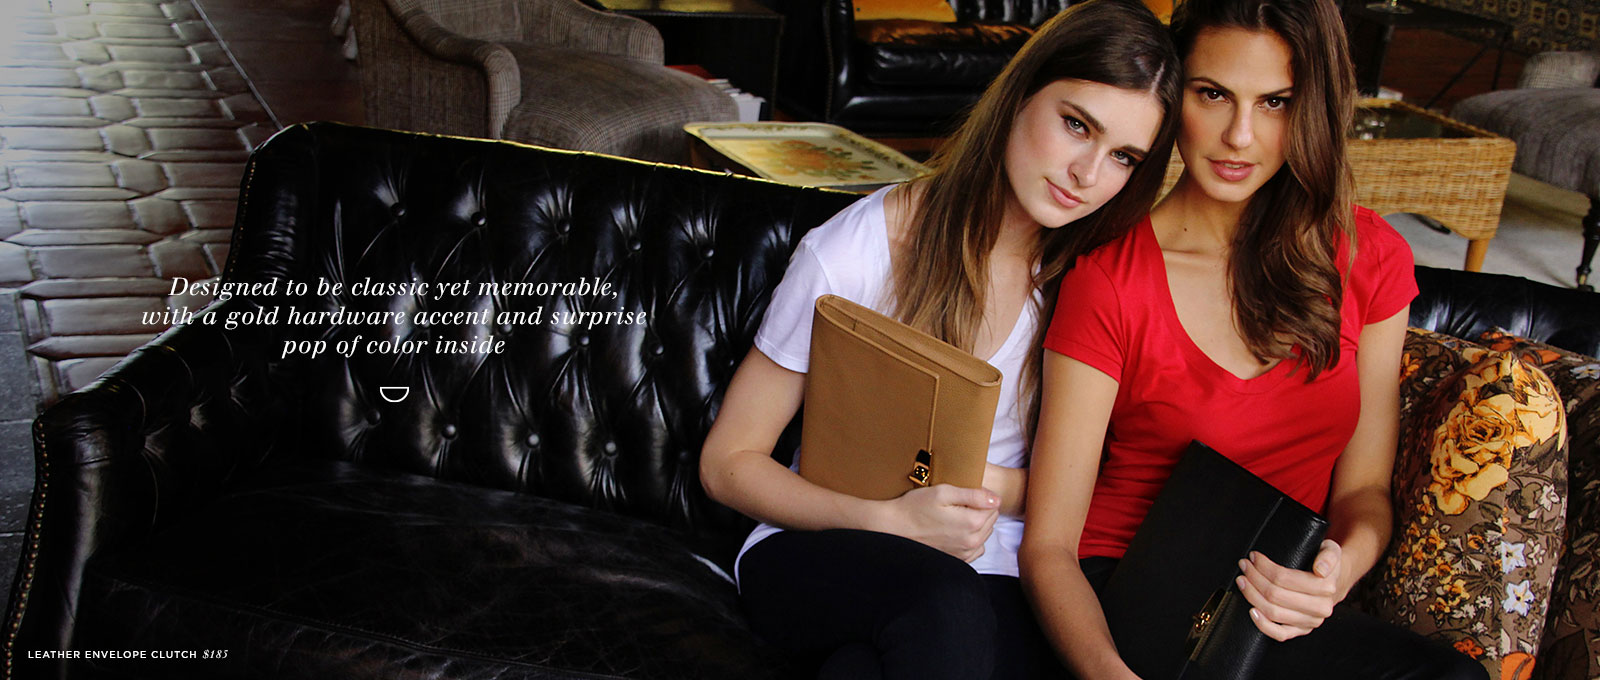 100% Argentine Leather Envelope Clutch and iPad Case | Cuyana Shop